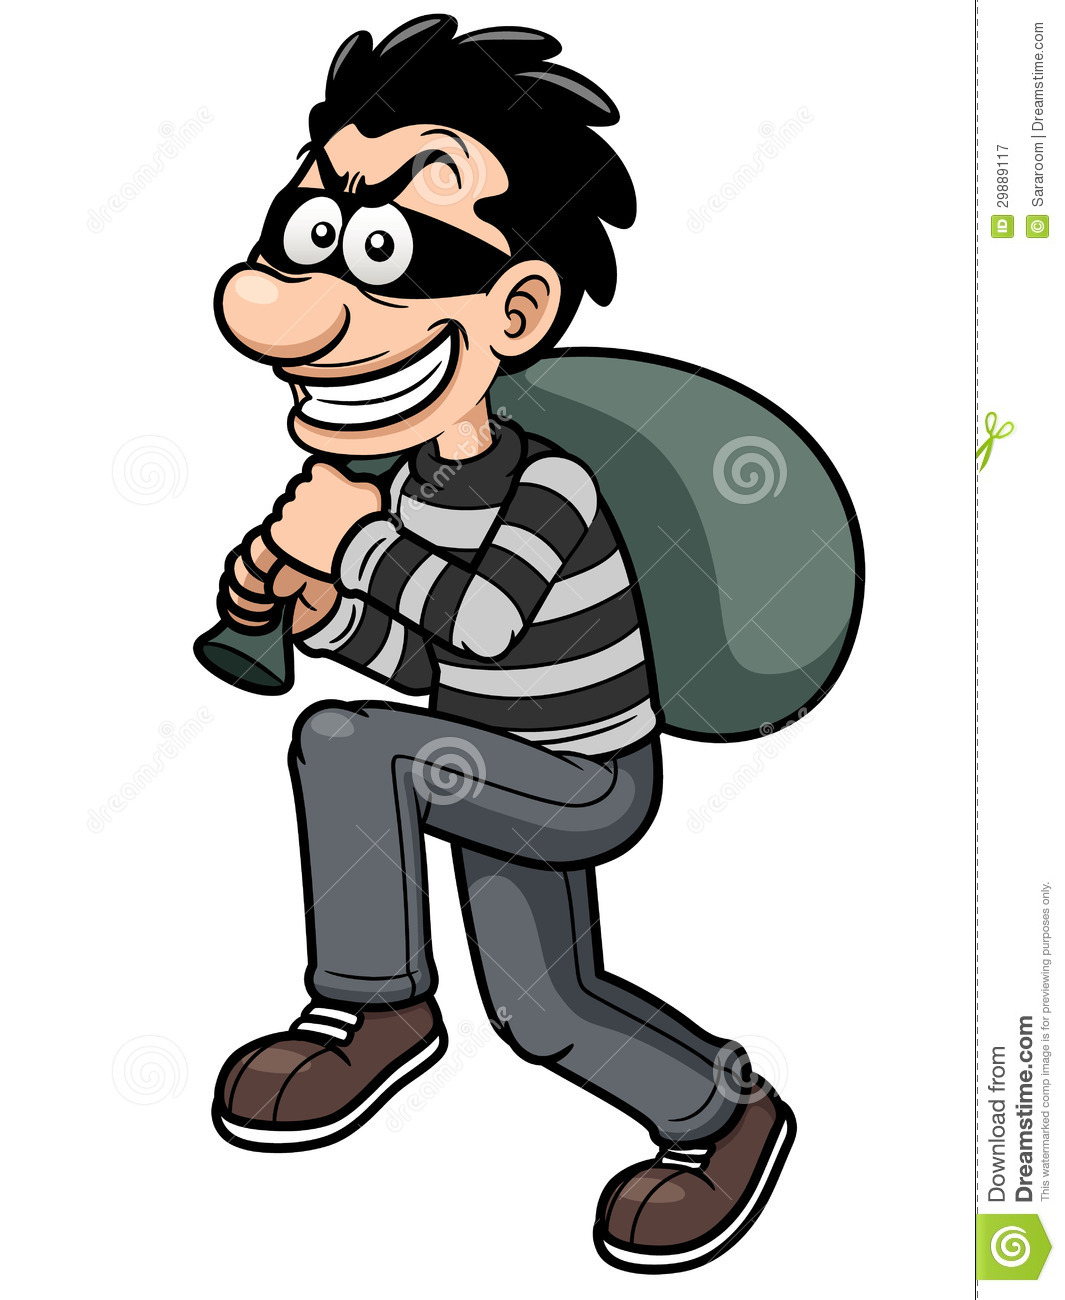 Cartoon Thief Royalty Free Stock Photography - Image: 29889117